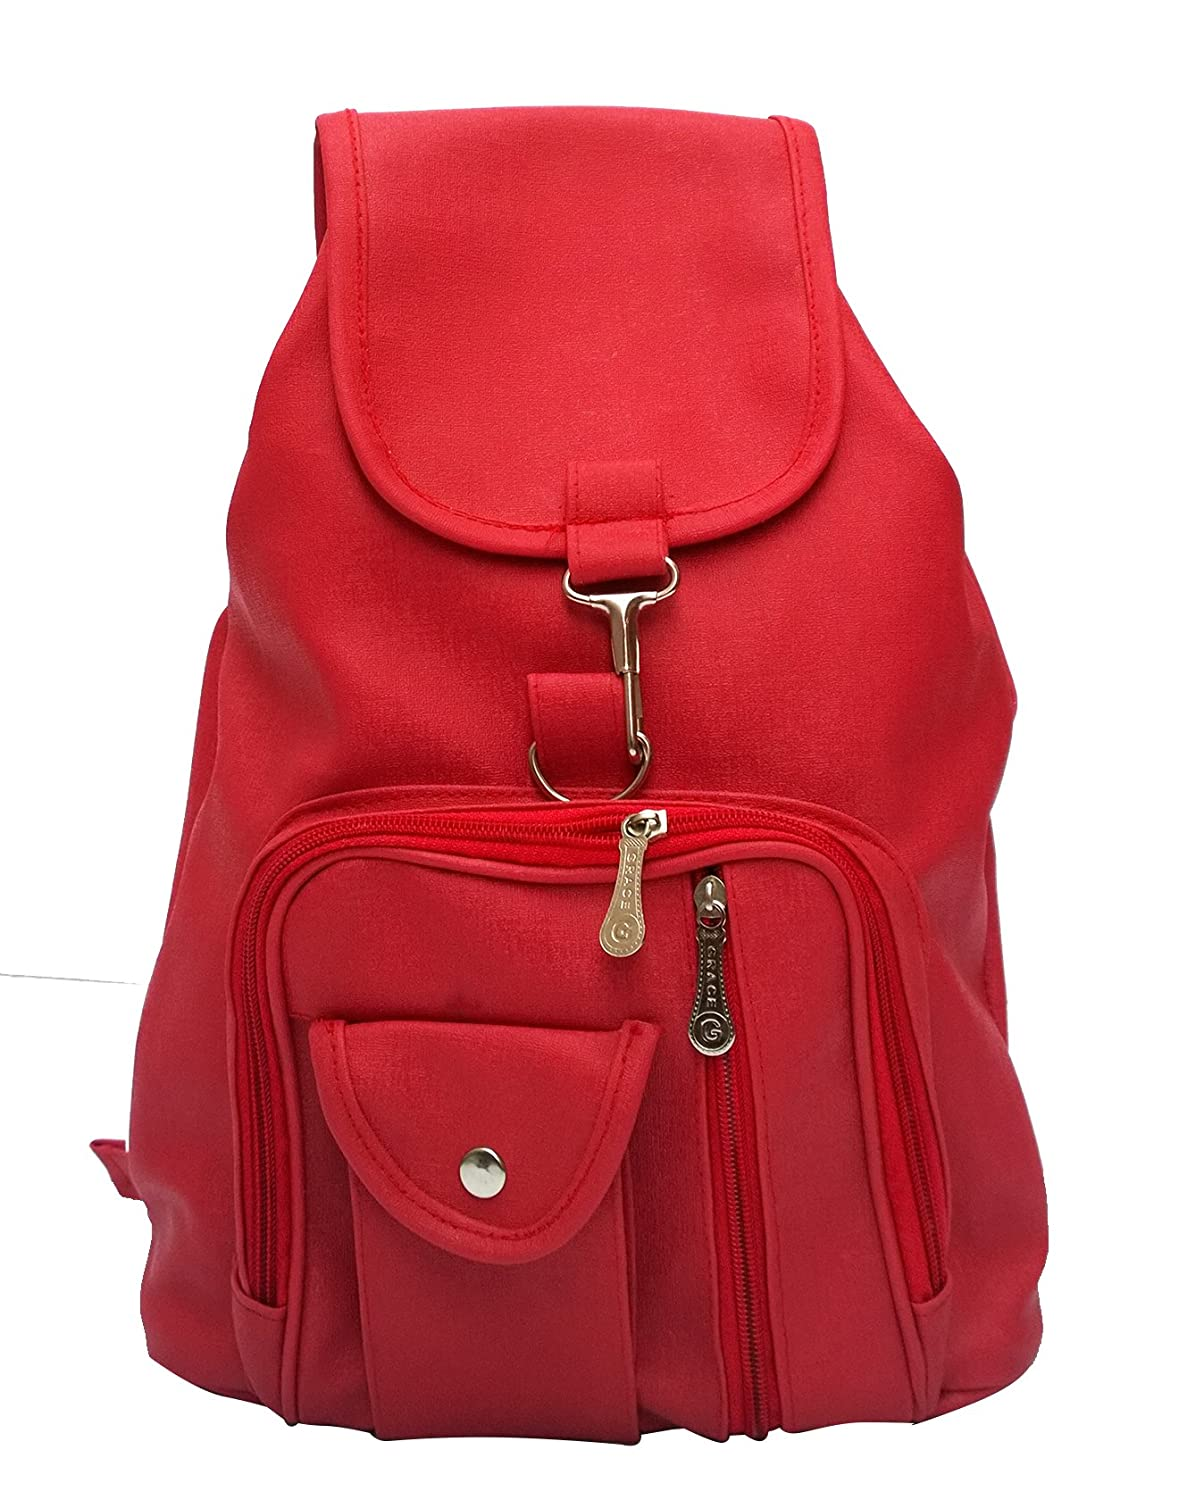 40%-70% off Handbags & Clutches By Amazon | Vintage Girl's Backpack Handbag (Red,Bag 124)  @ Rs.465